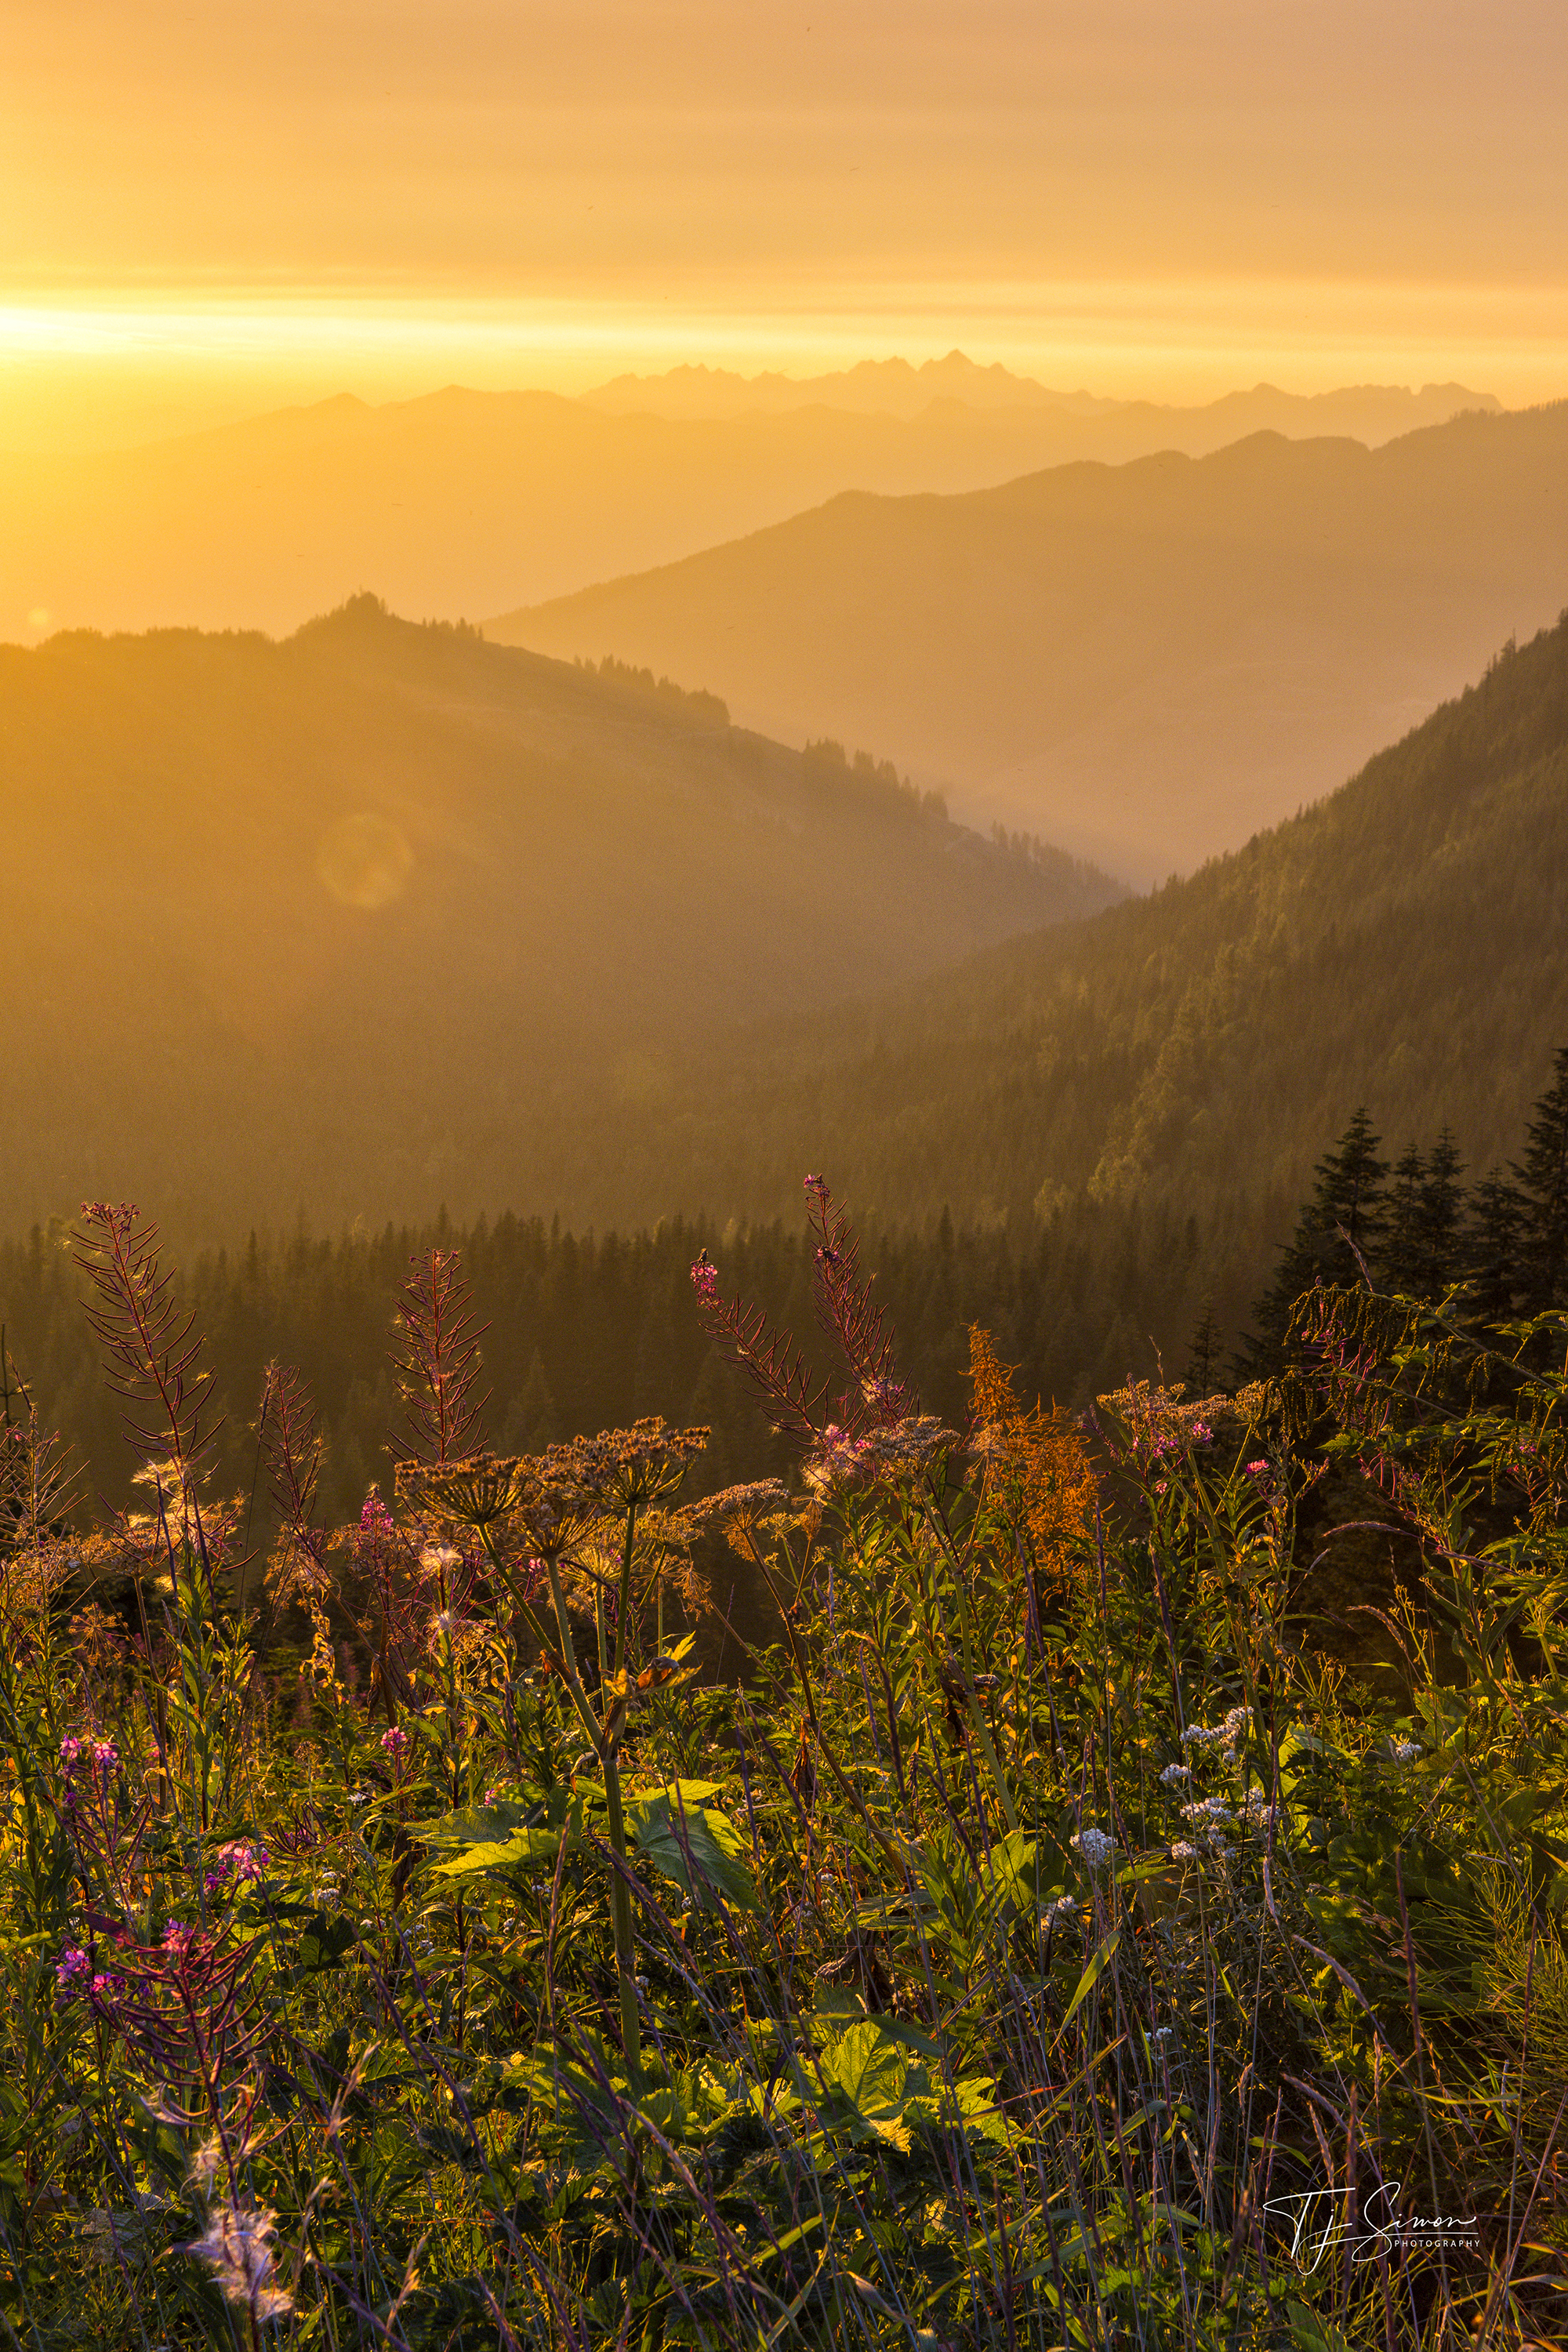 Wildfire and wildflowers